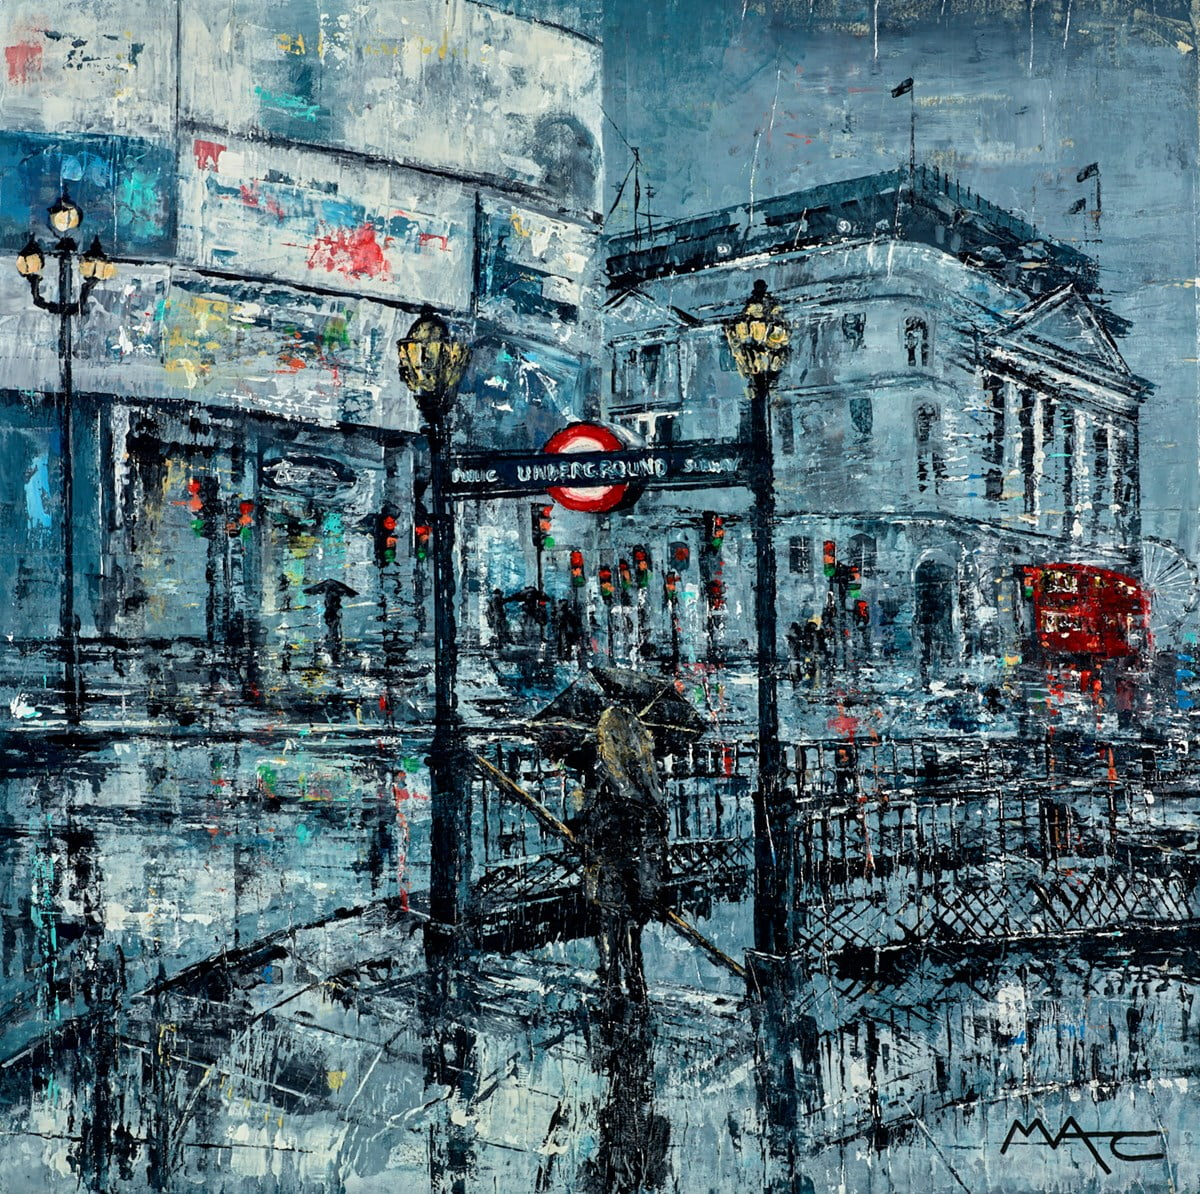 You Can See The Eye From Piccadilly ~ Mark Curryer